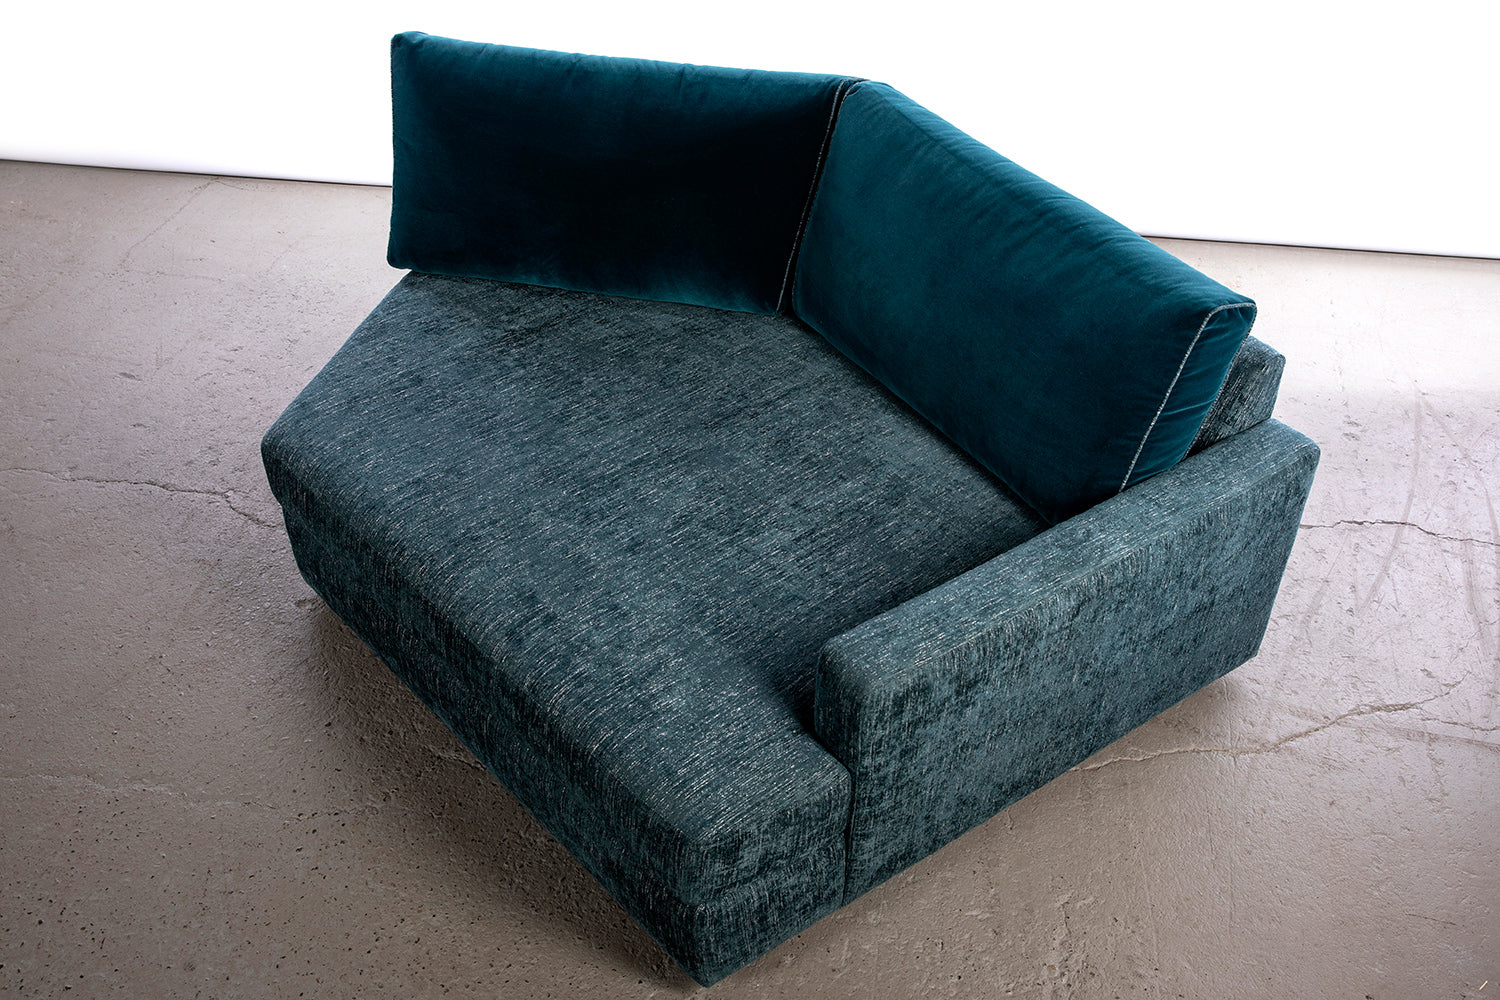 ffabb Coasty Slim Angler RHF modular sectional sofa in peacock mohair top view